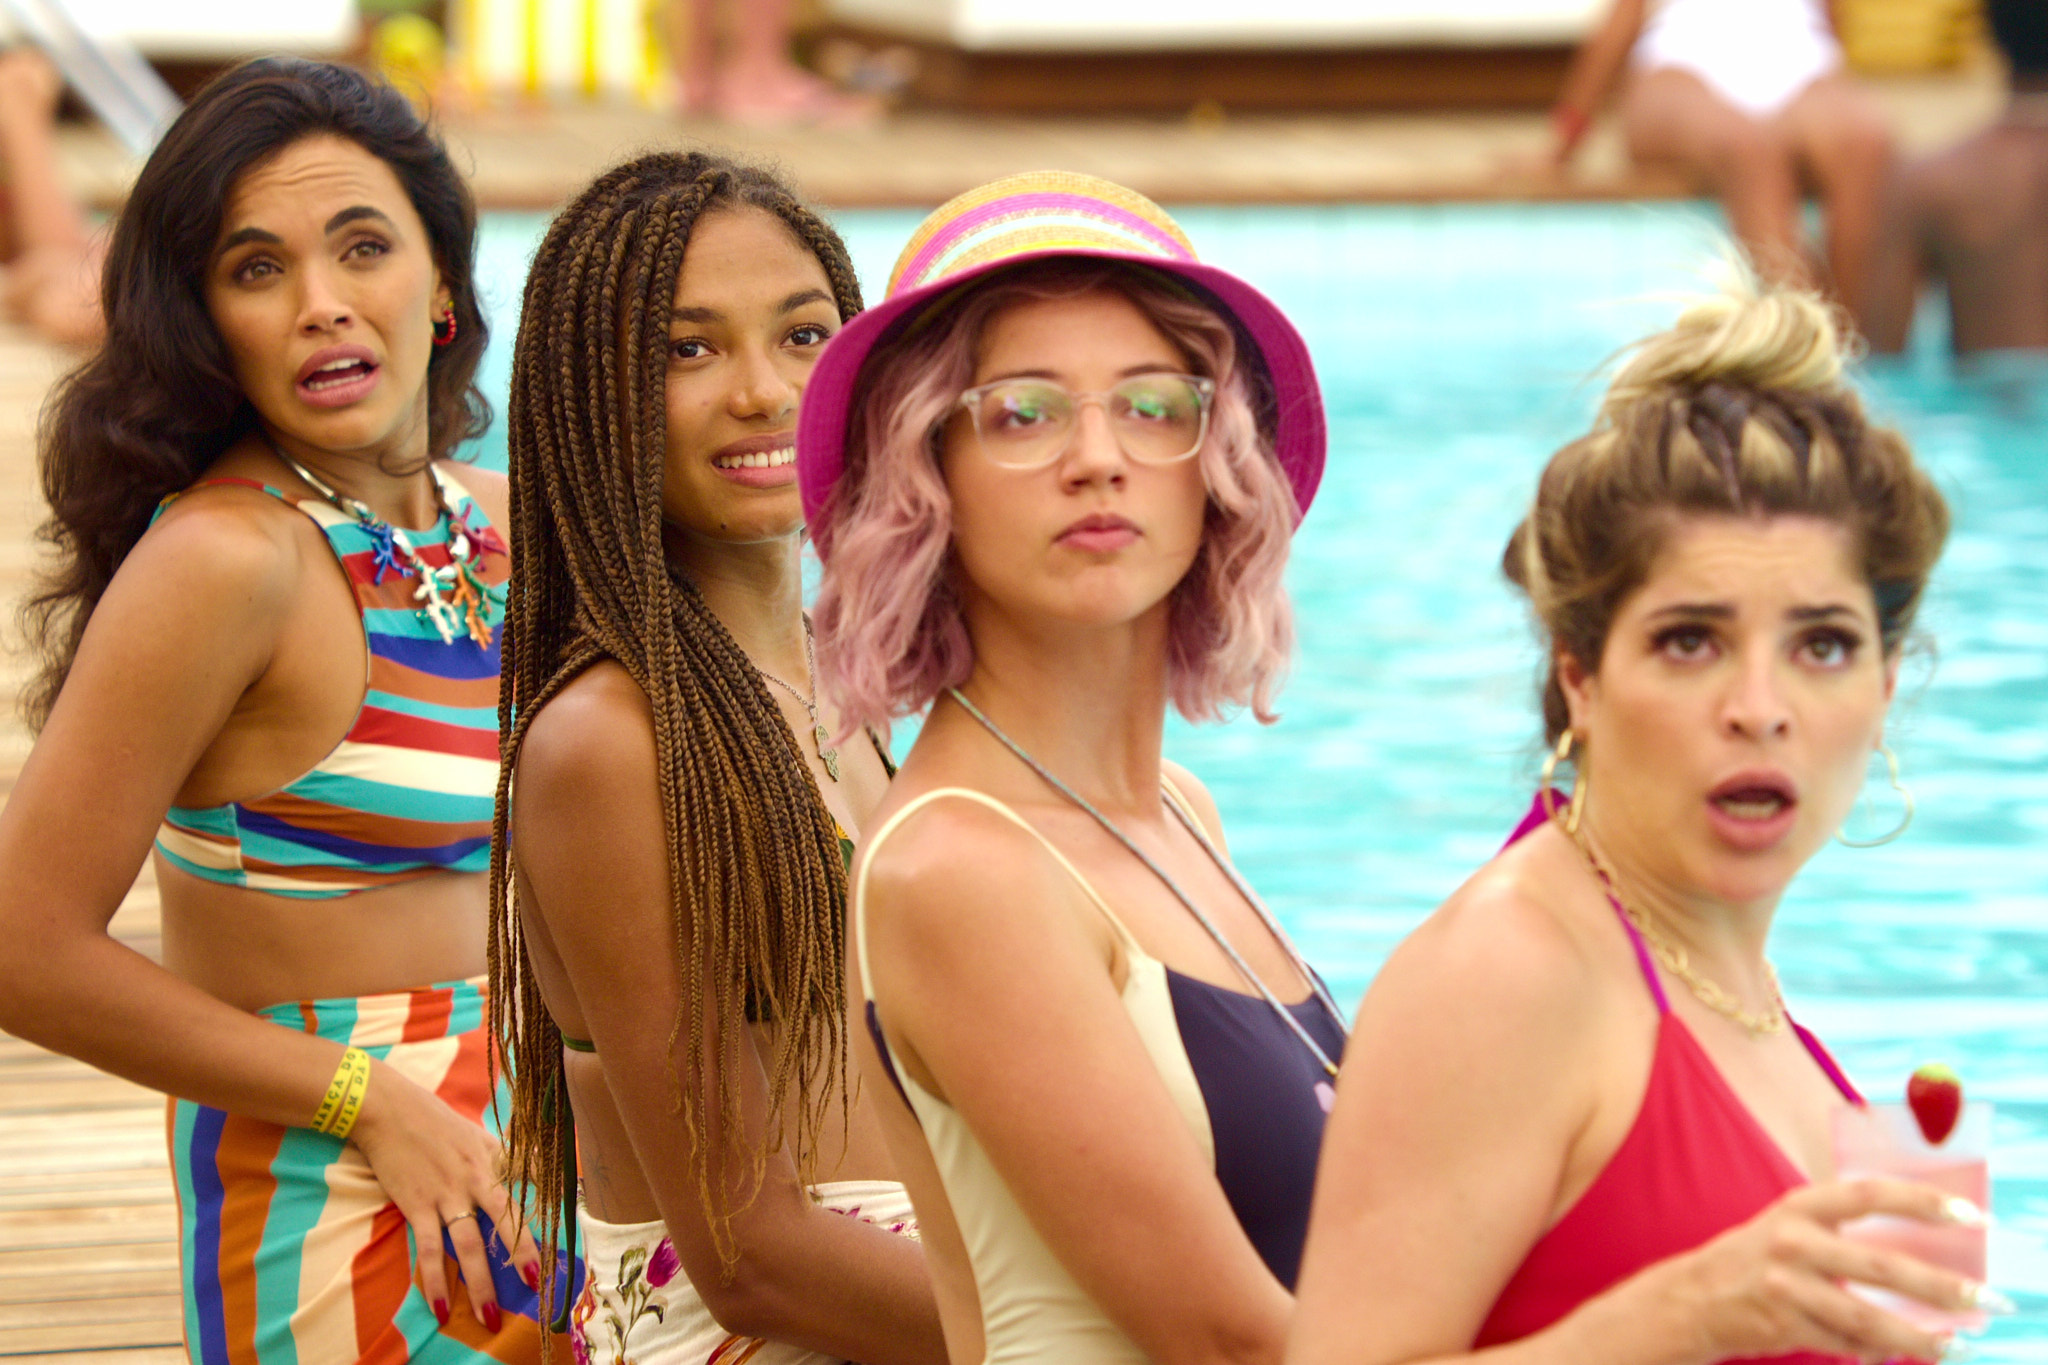 About Netflix - Parties, love and a lot of axé music: Carnaval is coming to  Netflix